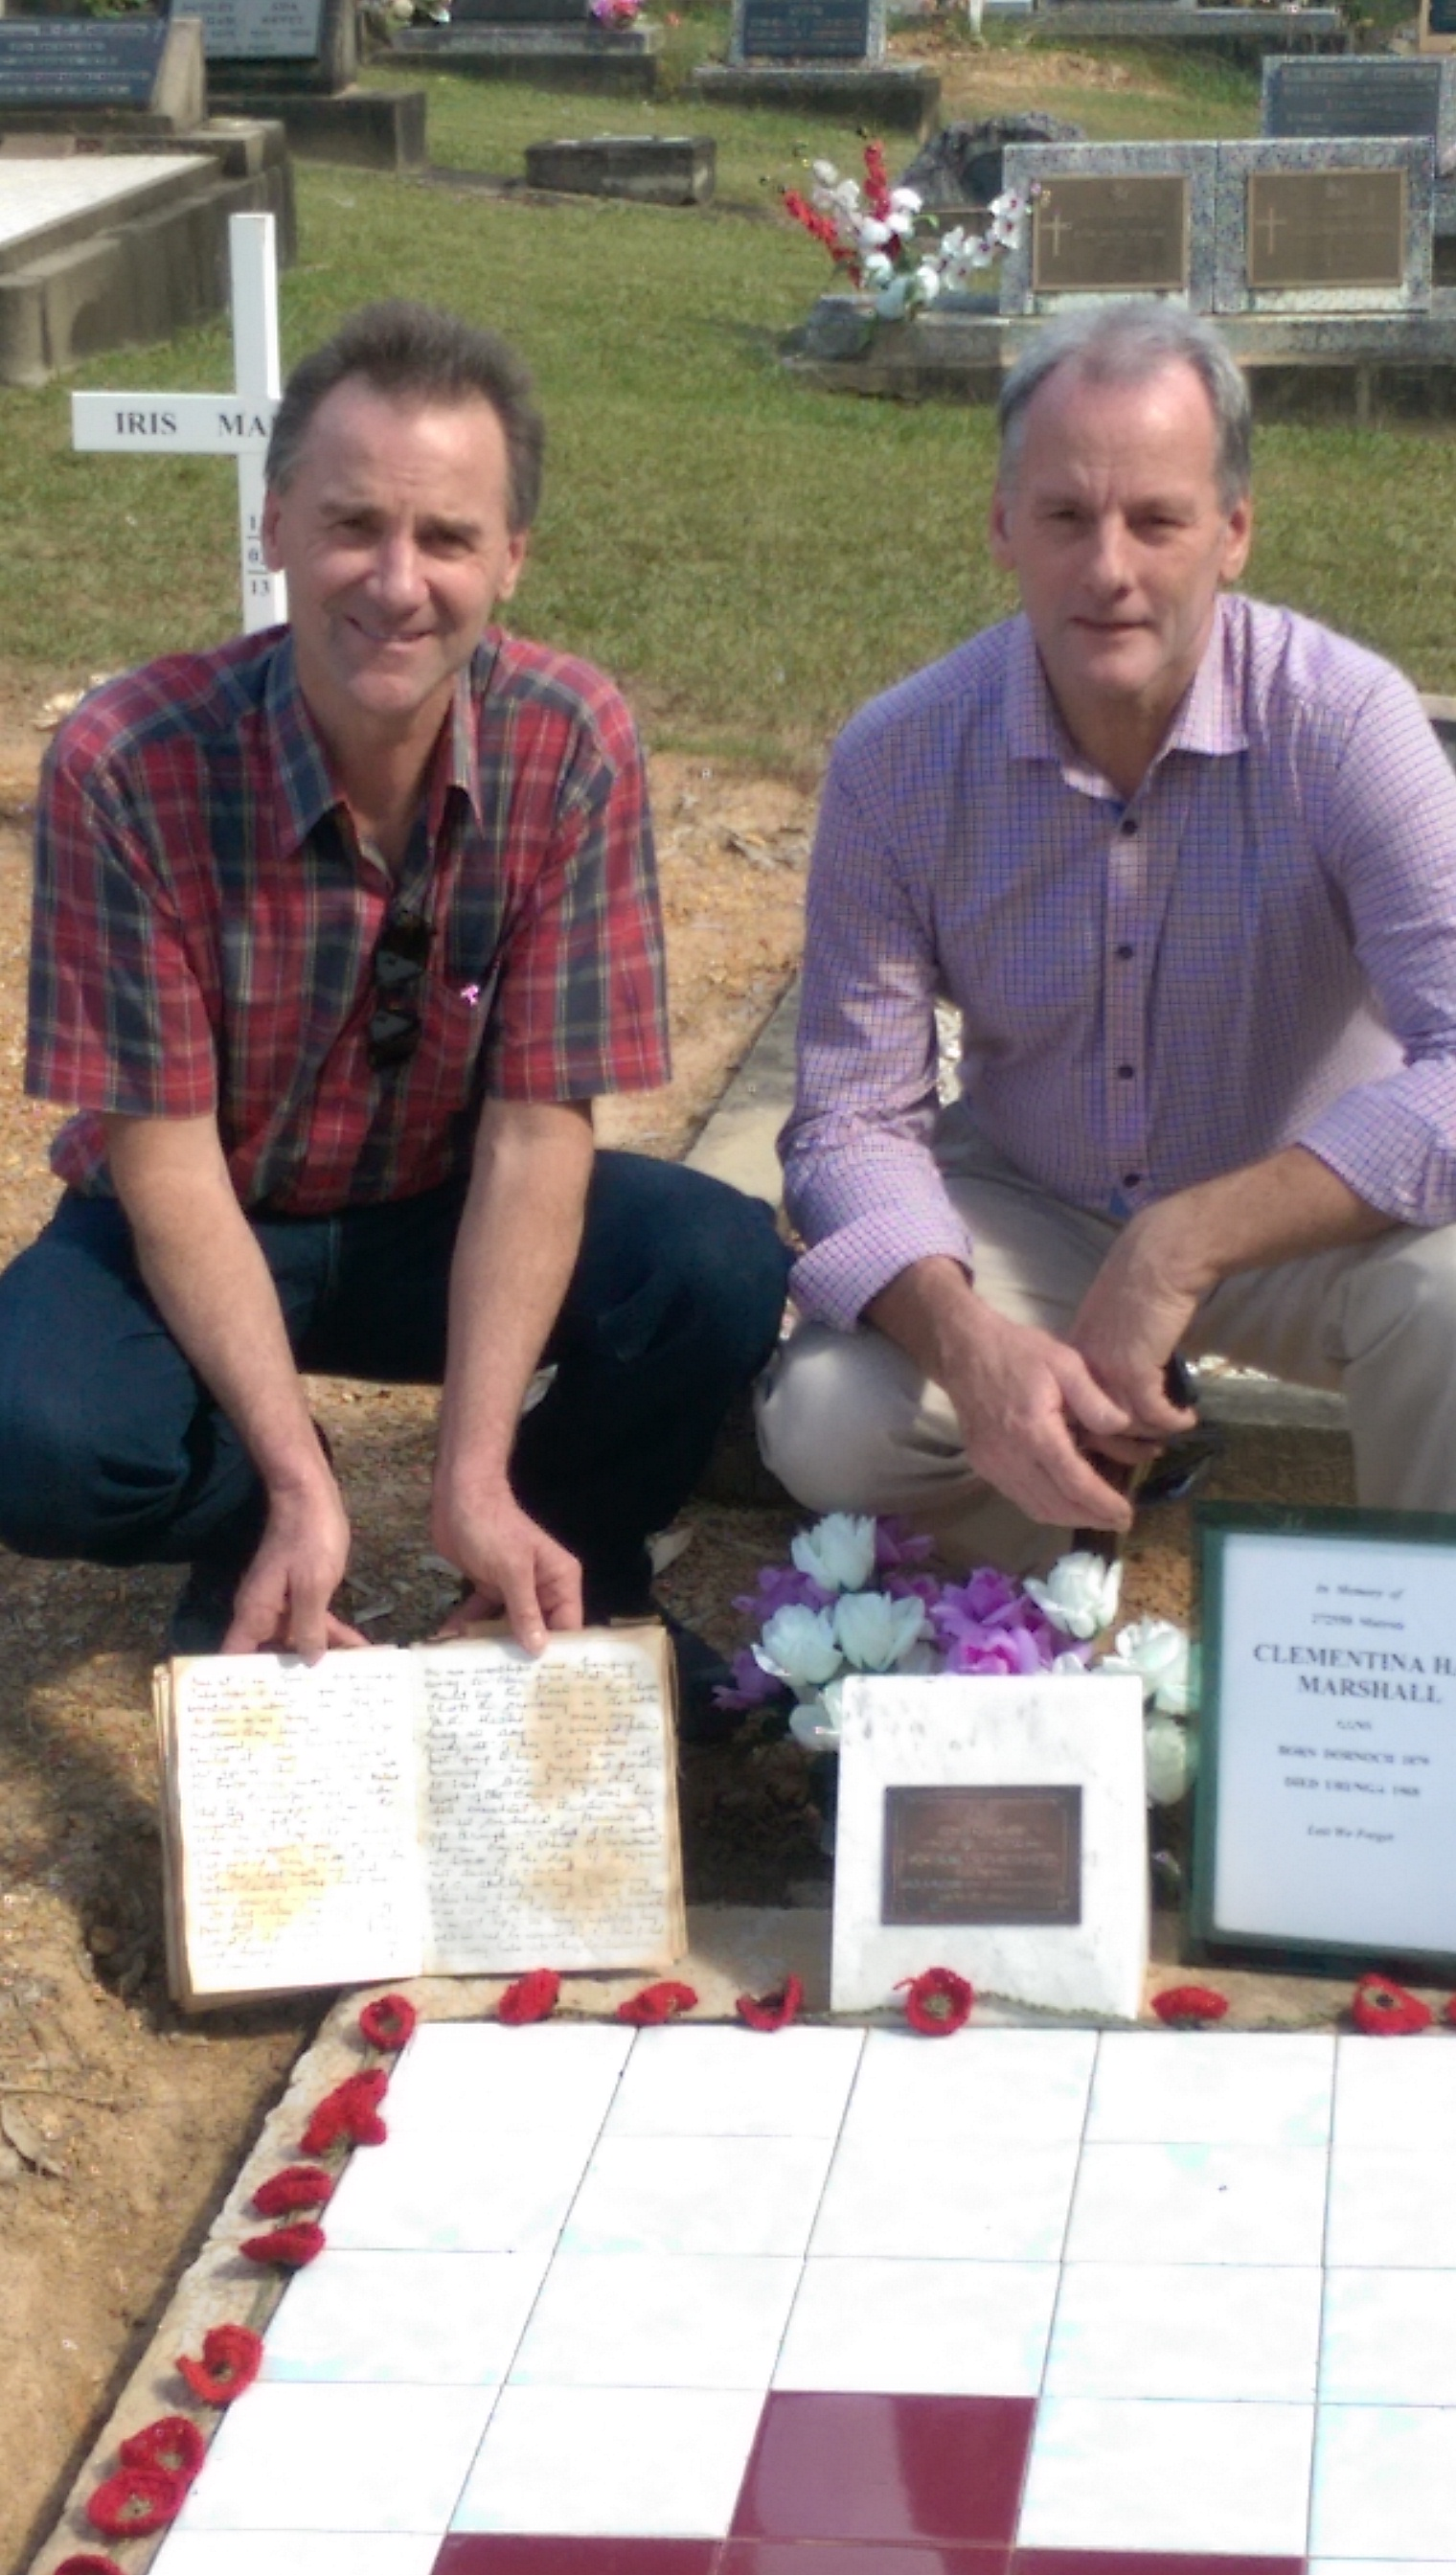 DONALD & ROSS MARSHALL GREAT NEPHEWS OF CLEMENTINA MARSHALL WITH HER DIARY FROM 1914